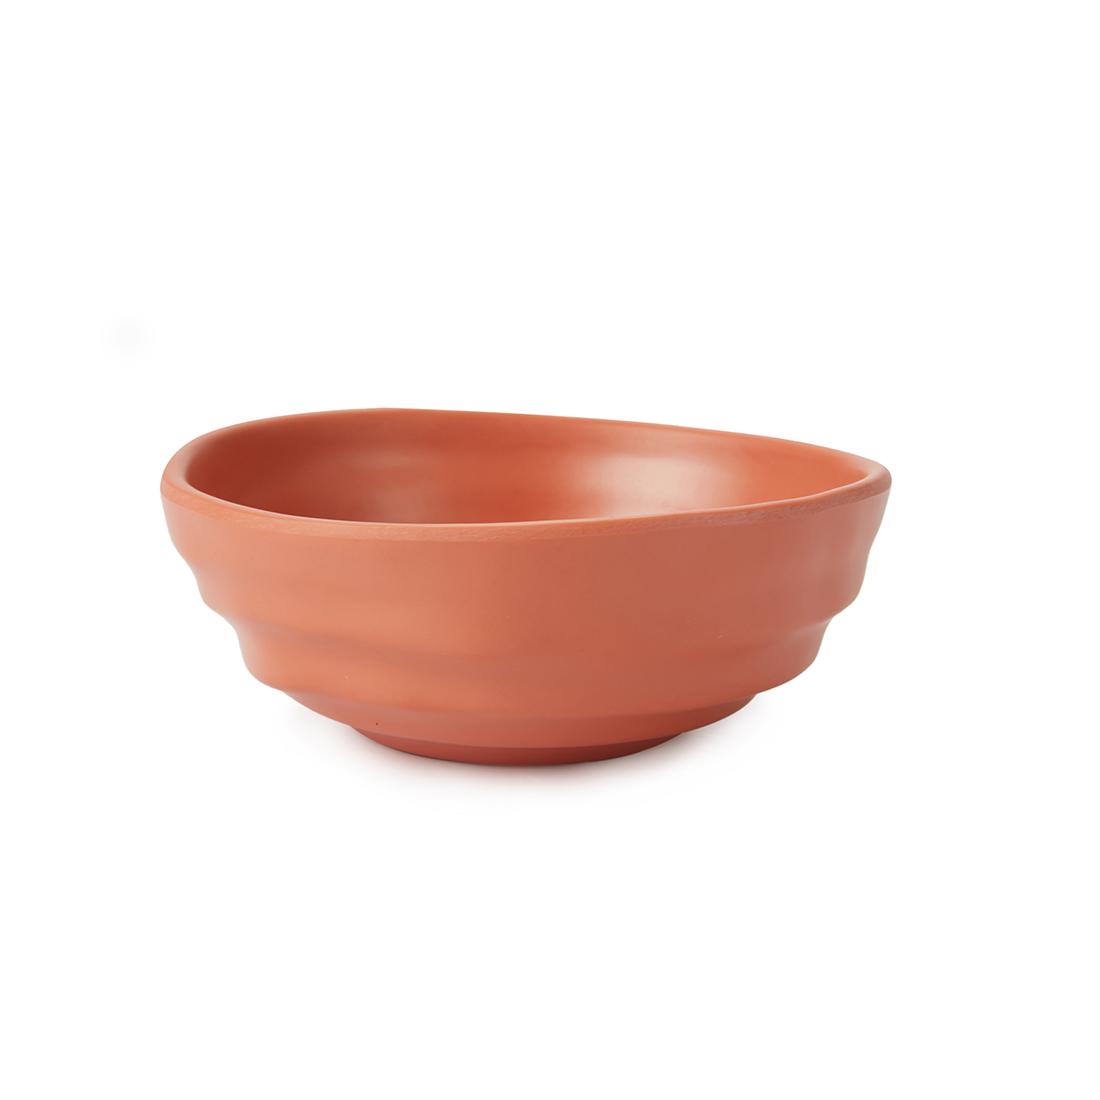 Terracotta Open Serving Bowl Small Serving Bowls in Brown Colour by Living Essence